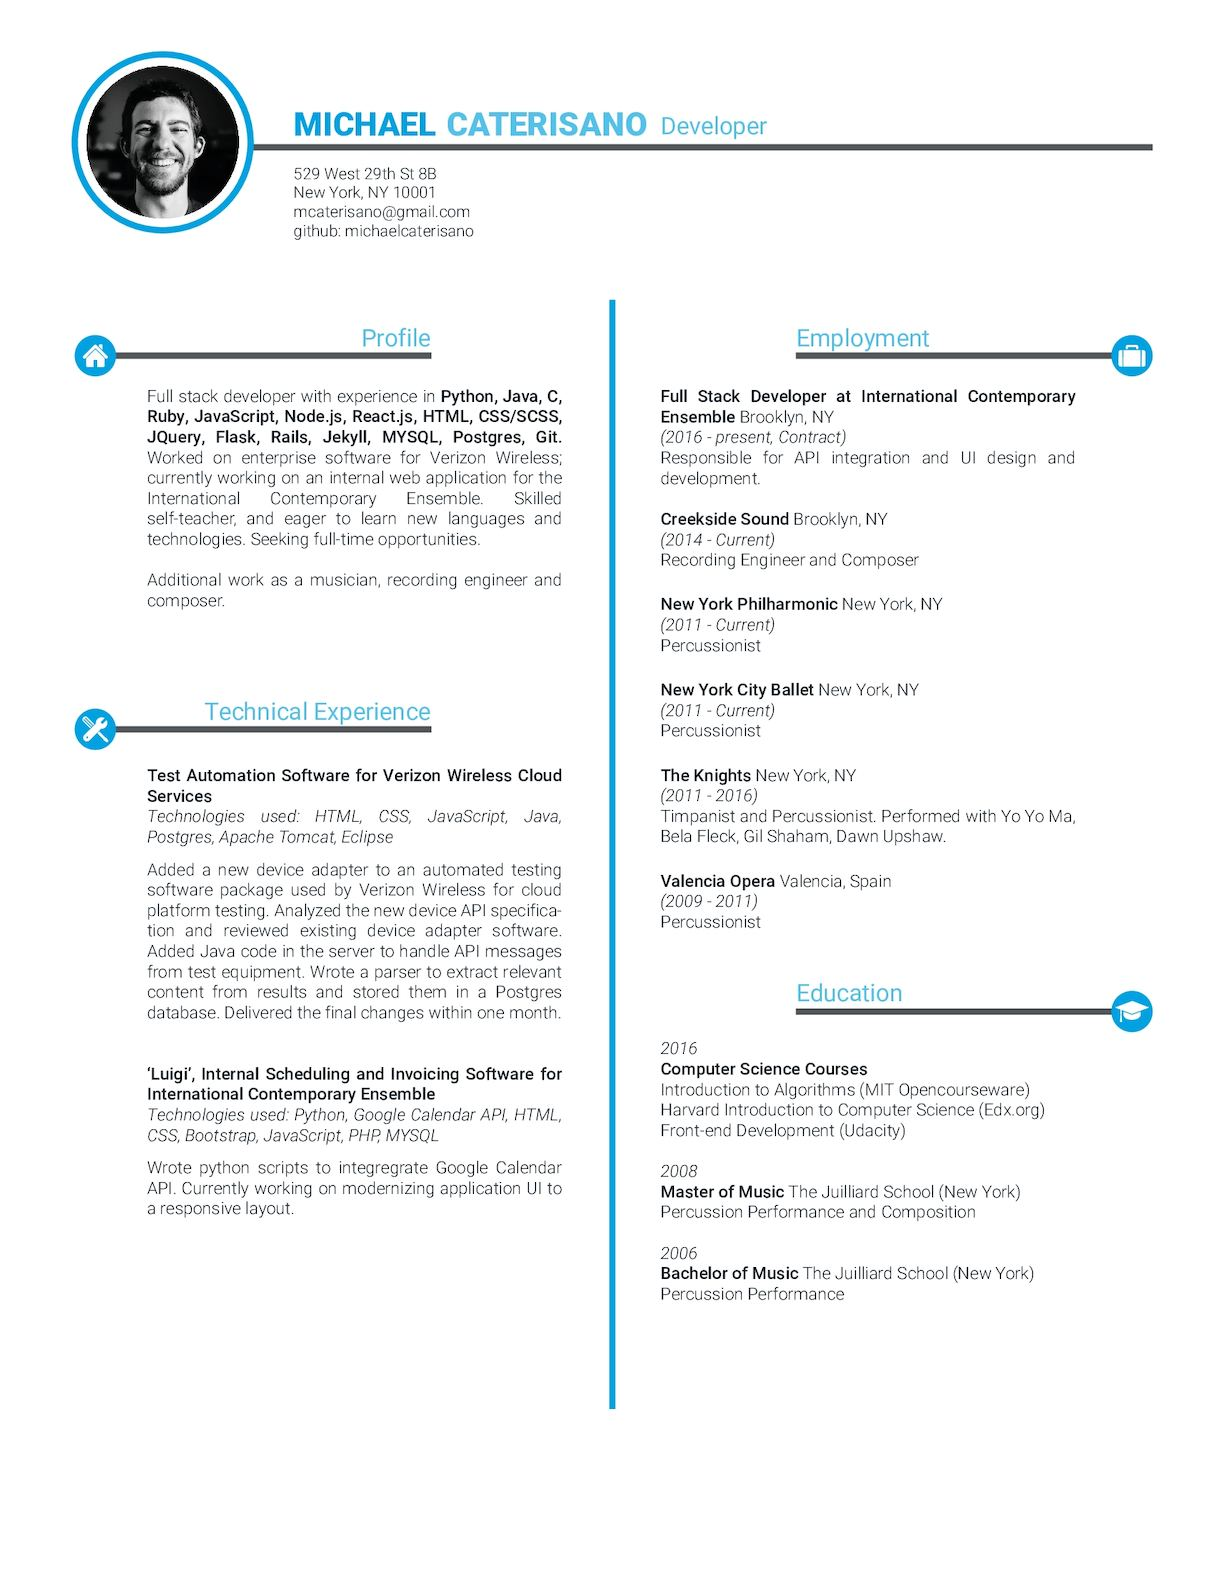 Calaméo - Caterisano Technical Resume